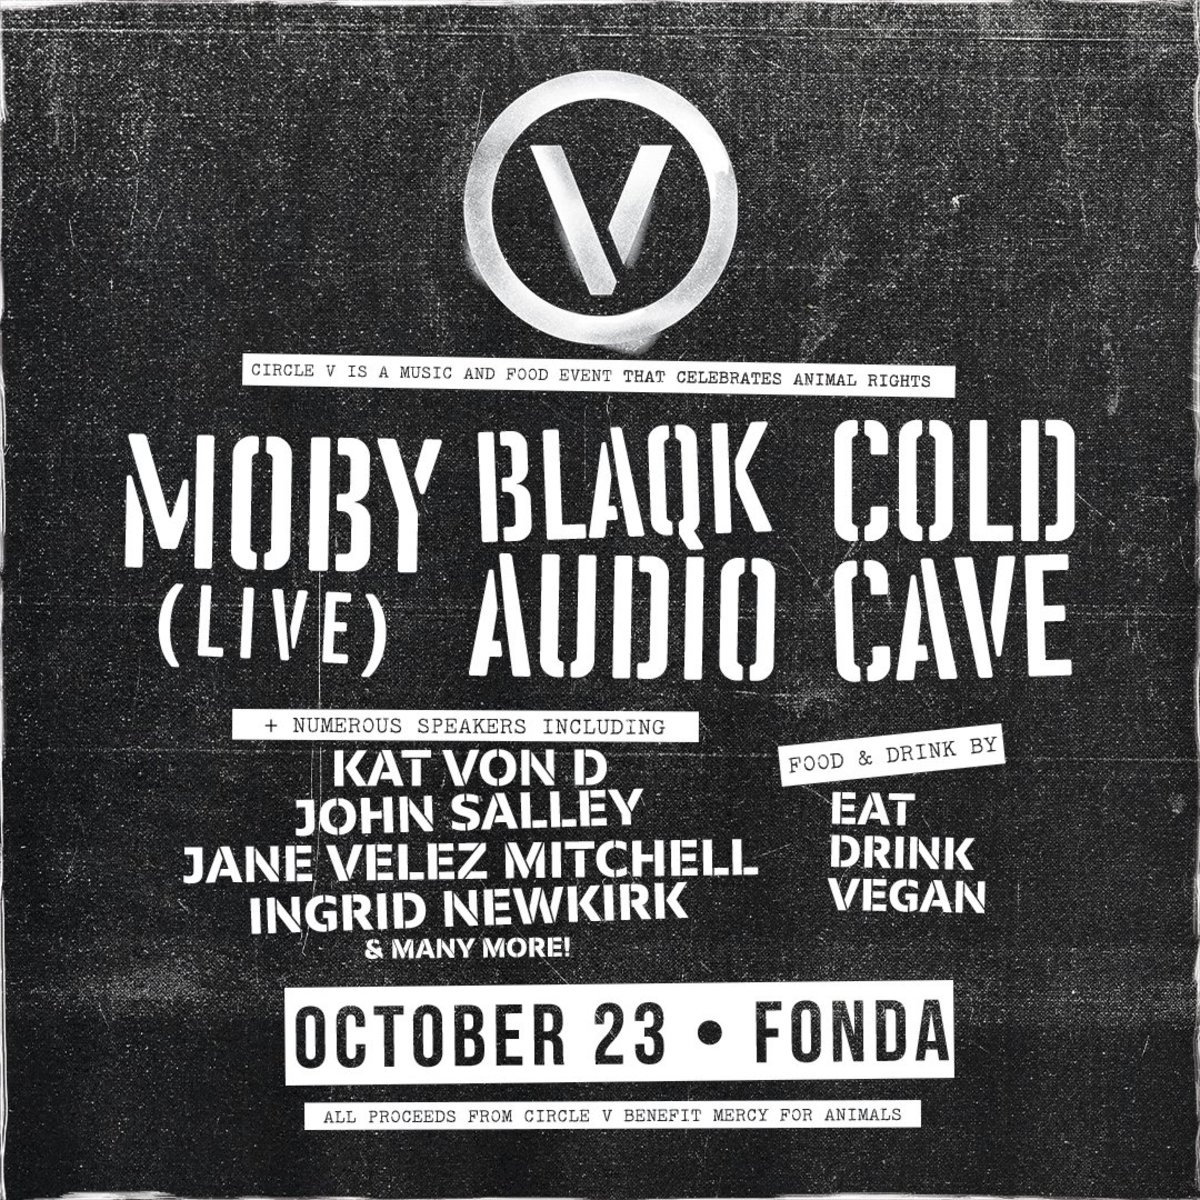 Moby Circle V Goldenvoice